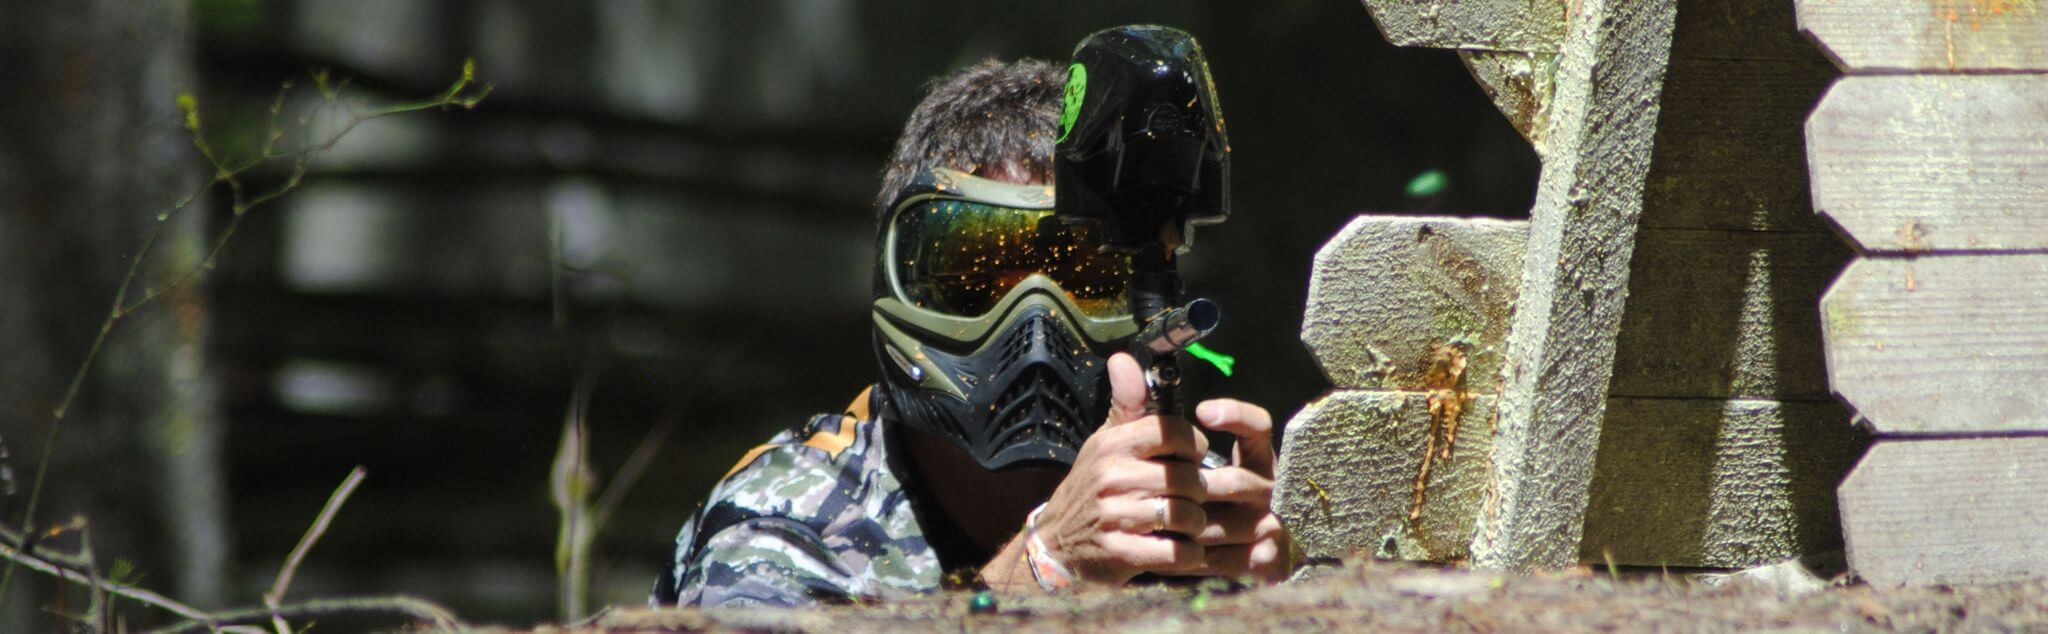 Paintball in Newry and Mourne